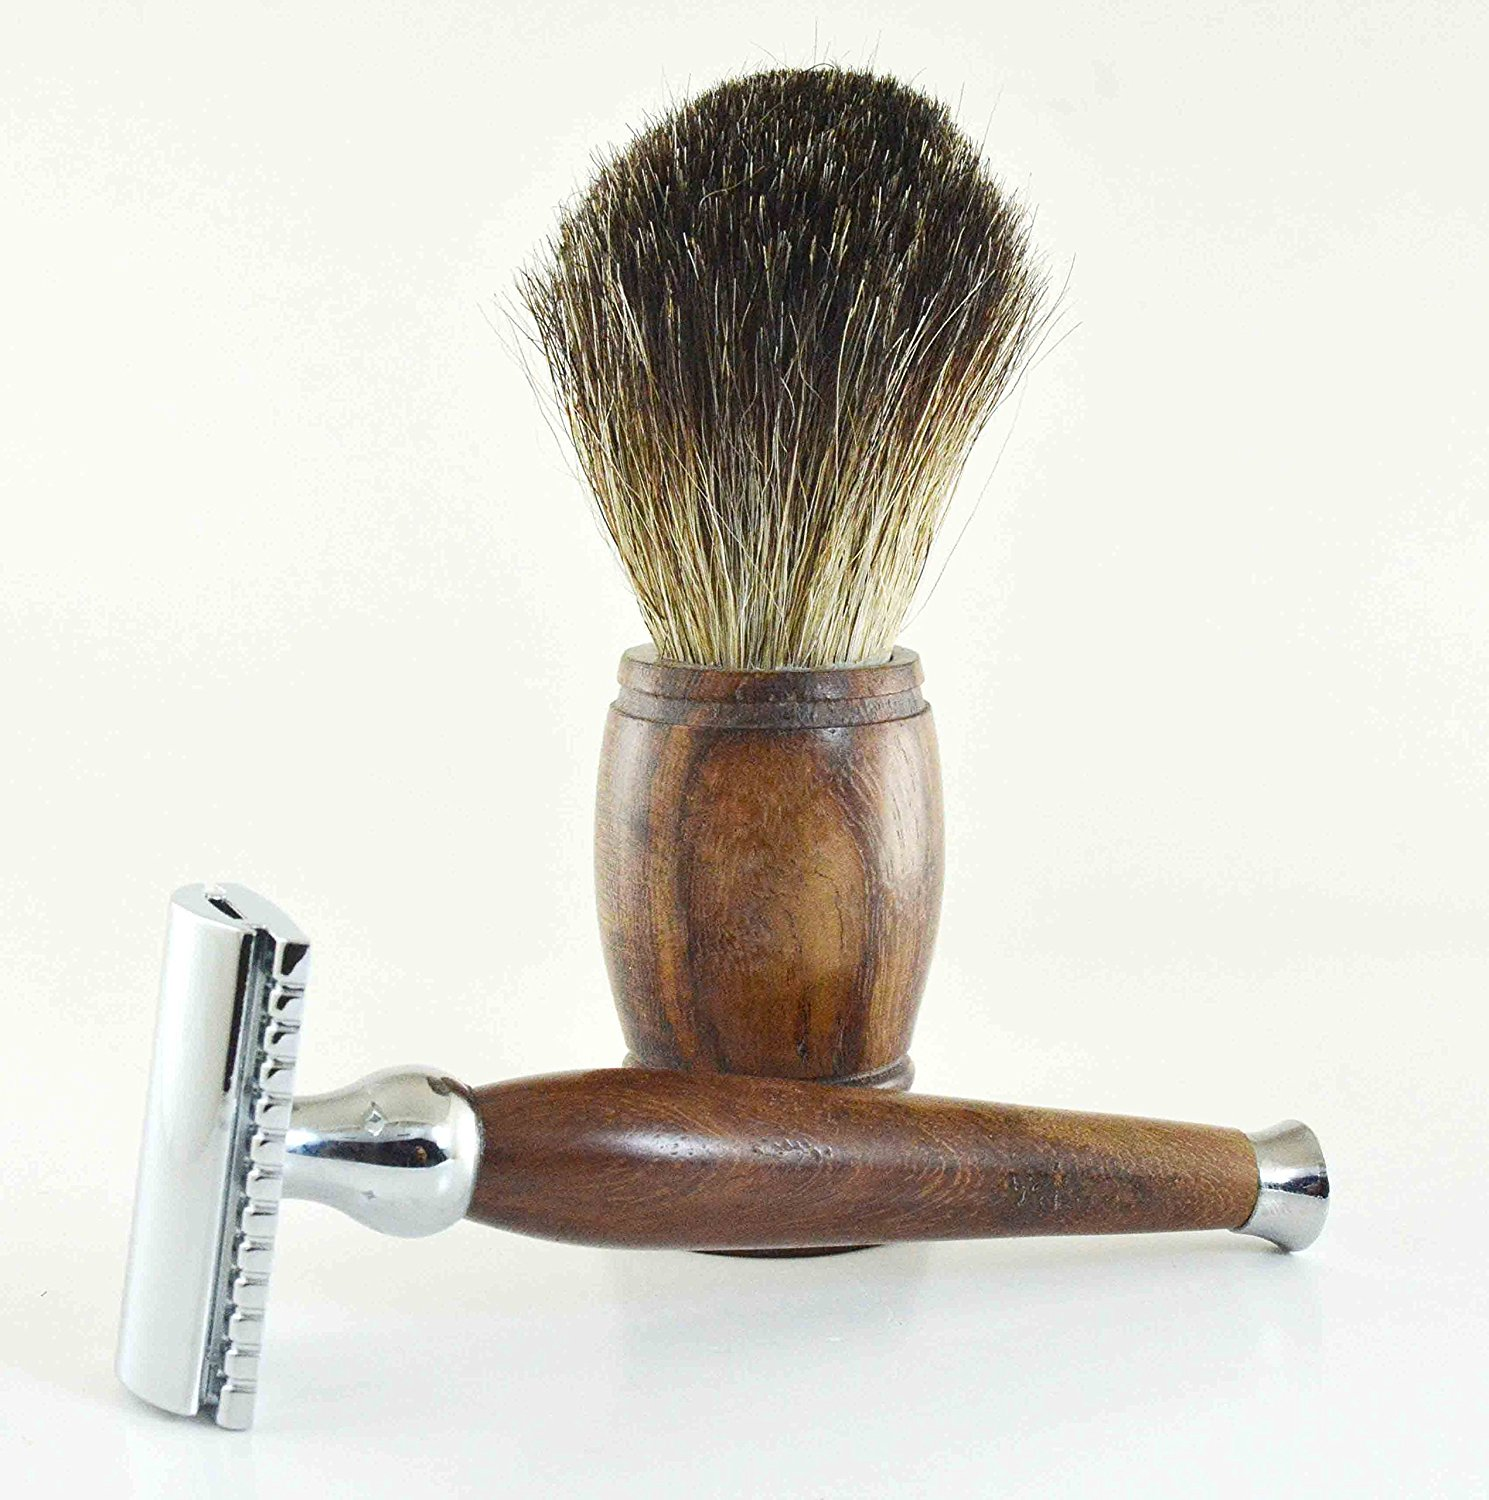 Safety Razor & Shaving Brush Combo by Cutlass | Rosewood Handles | Handmade | 100% Pure Badger Bristles | 5 New Replacement Blades | Stainless Steel | 100% Money Back Guarantee*